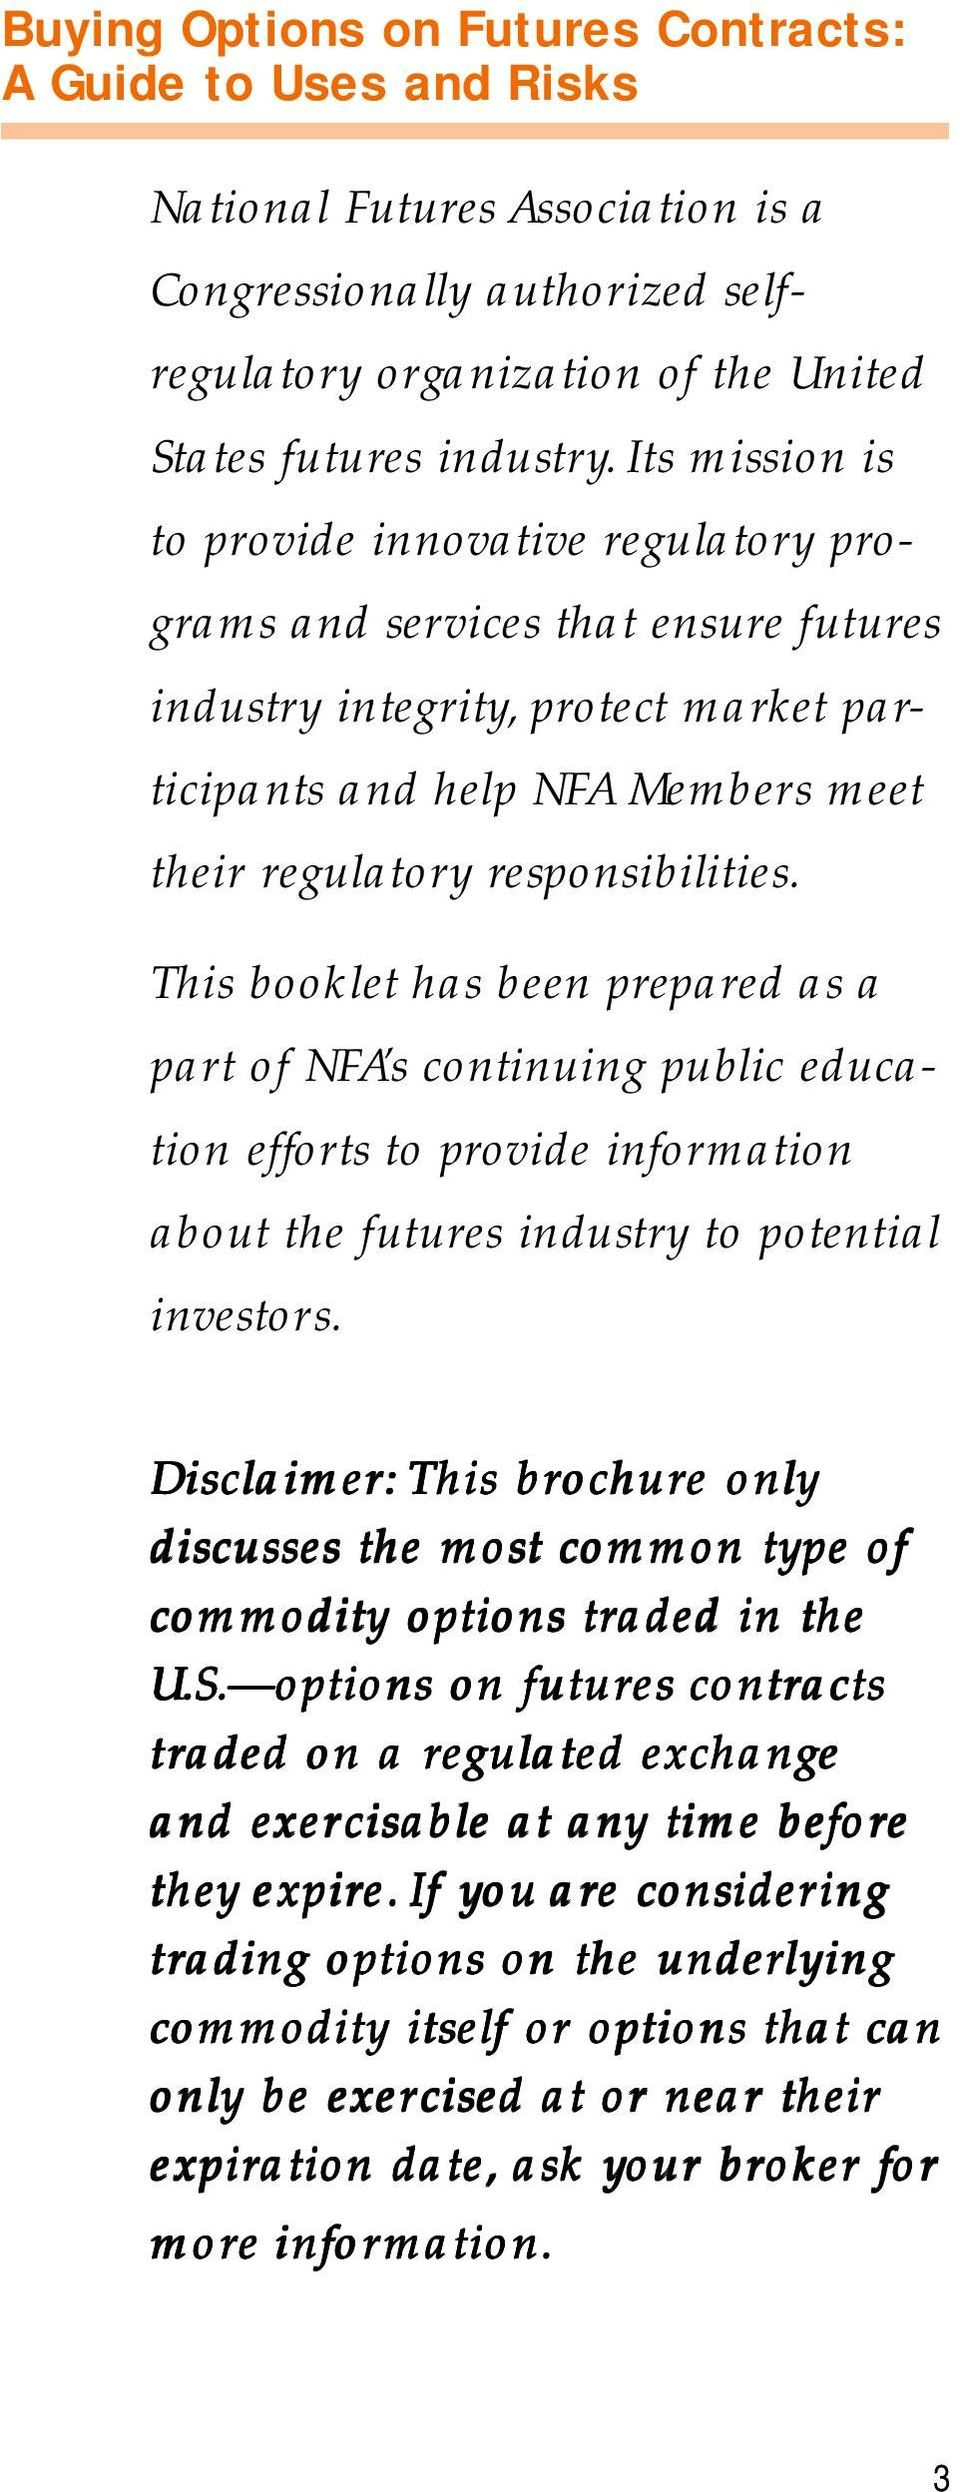 This booklet has been prepared as a part of NFA s continuing public education efforts to provide information about the futures industry to potential investors.